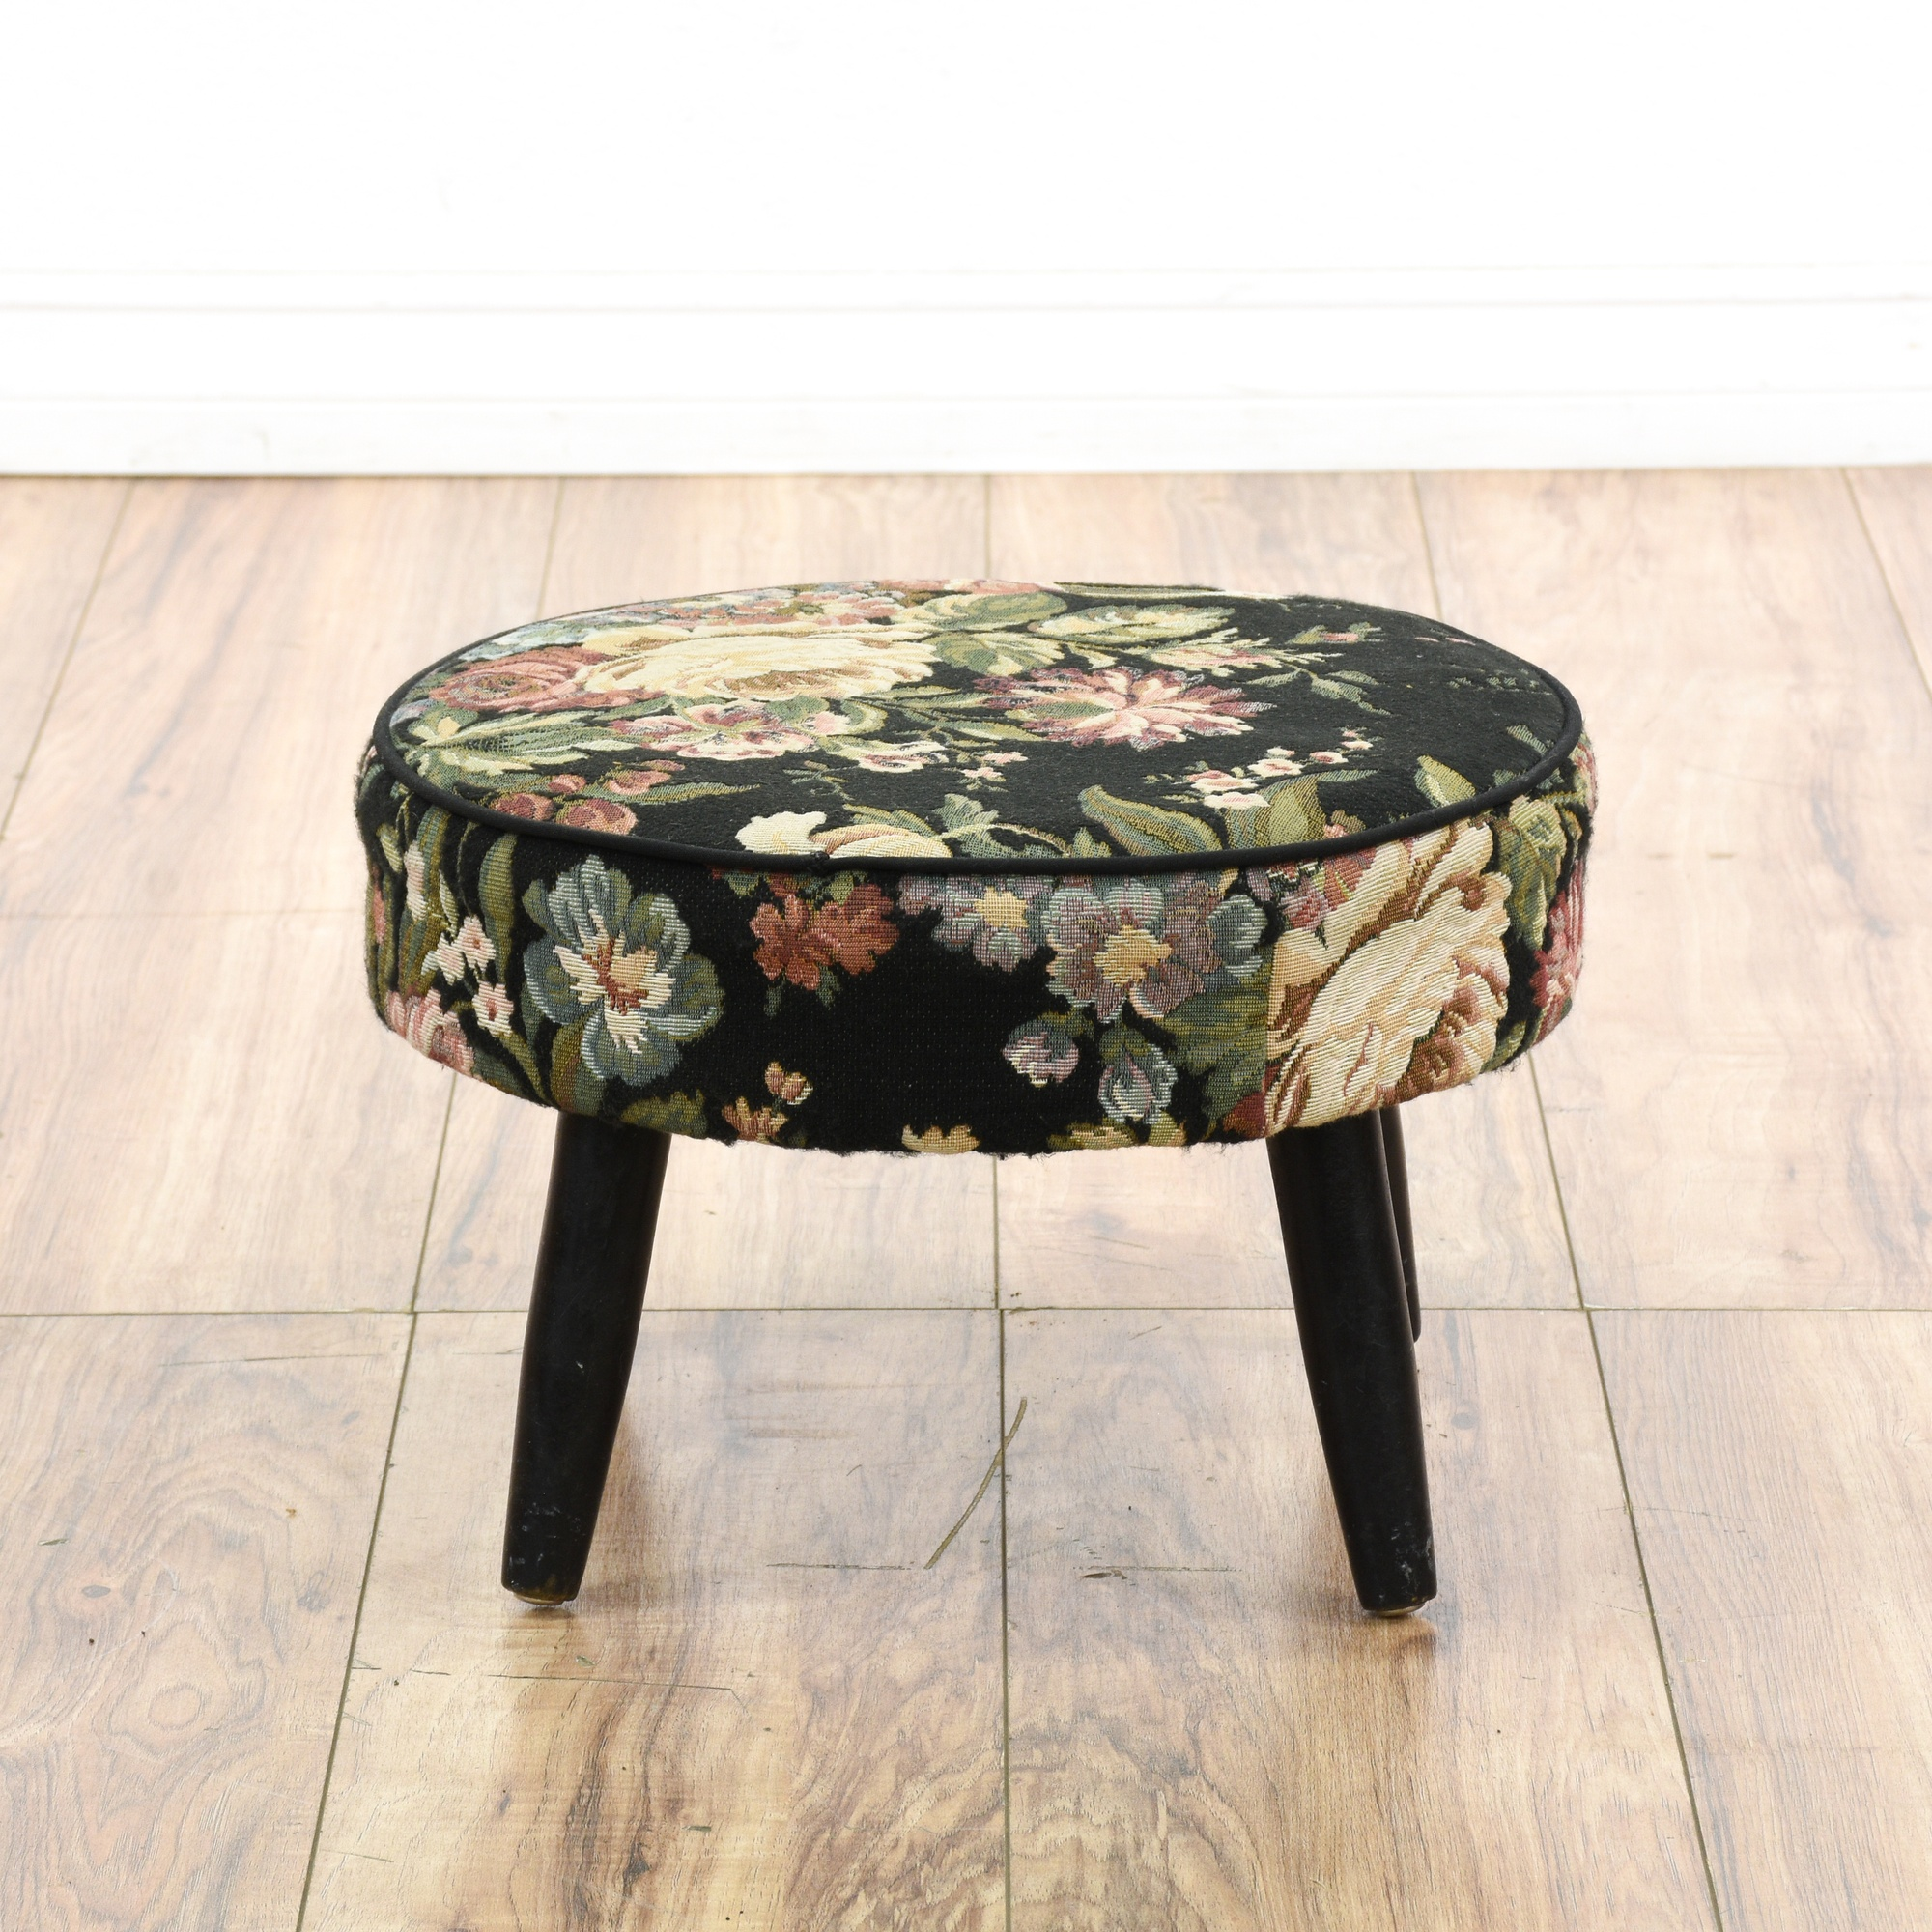 Round Cottage Chic Woven Floral Ottoman Footstool